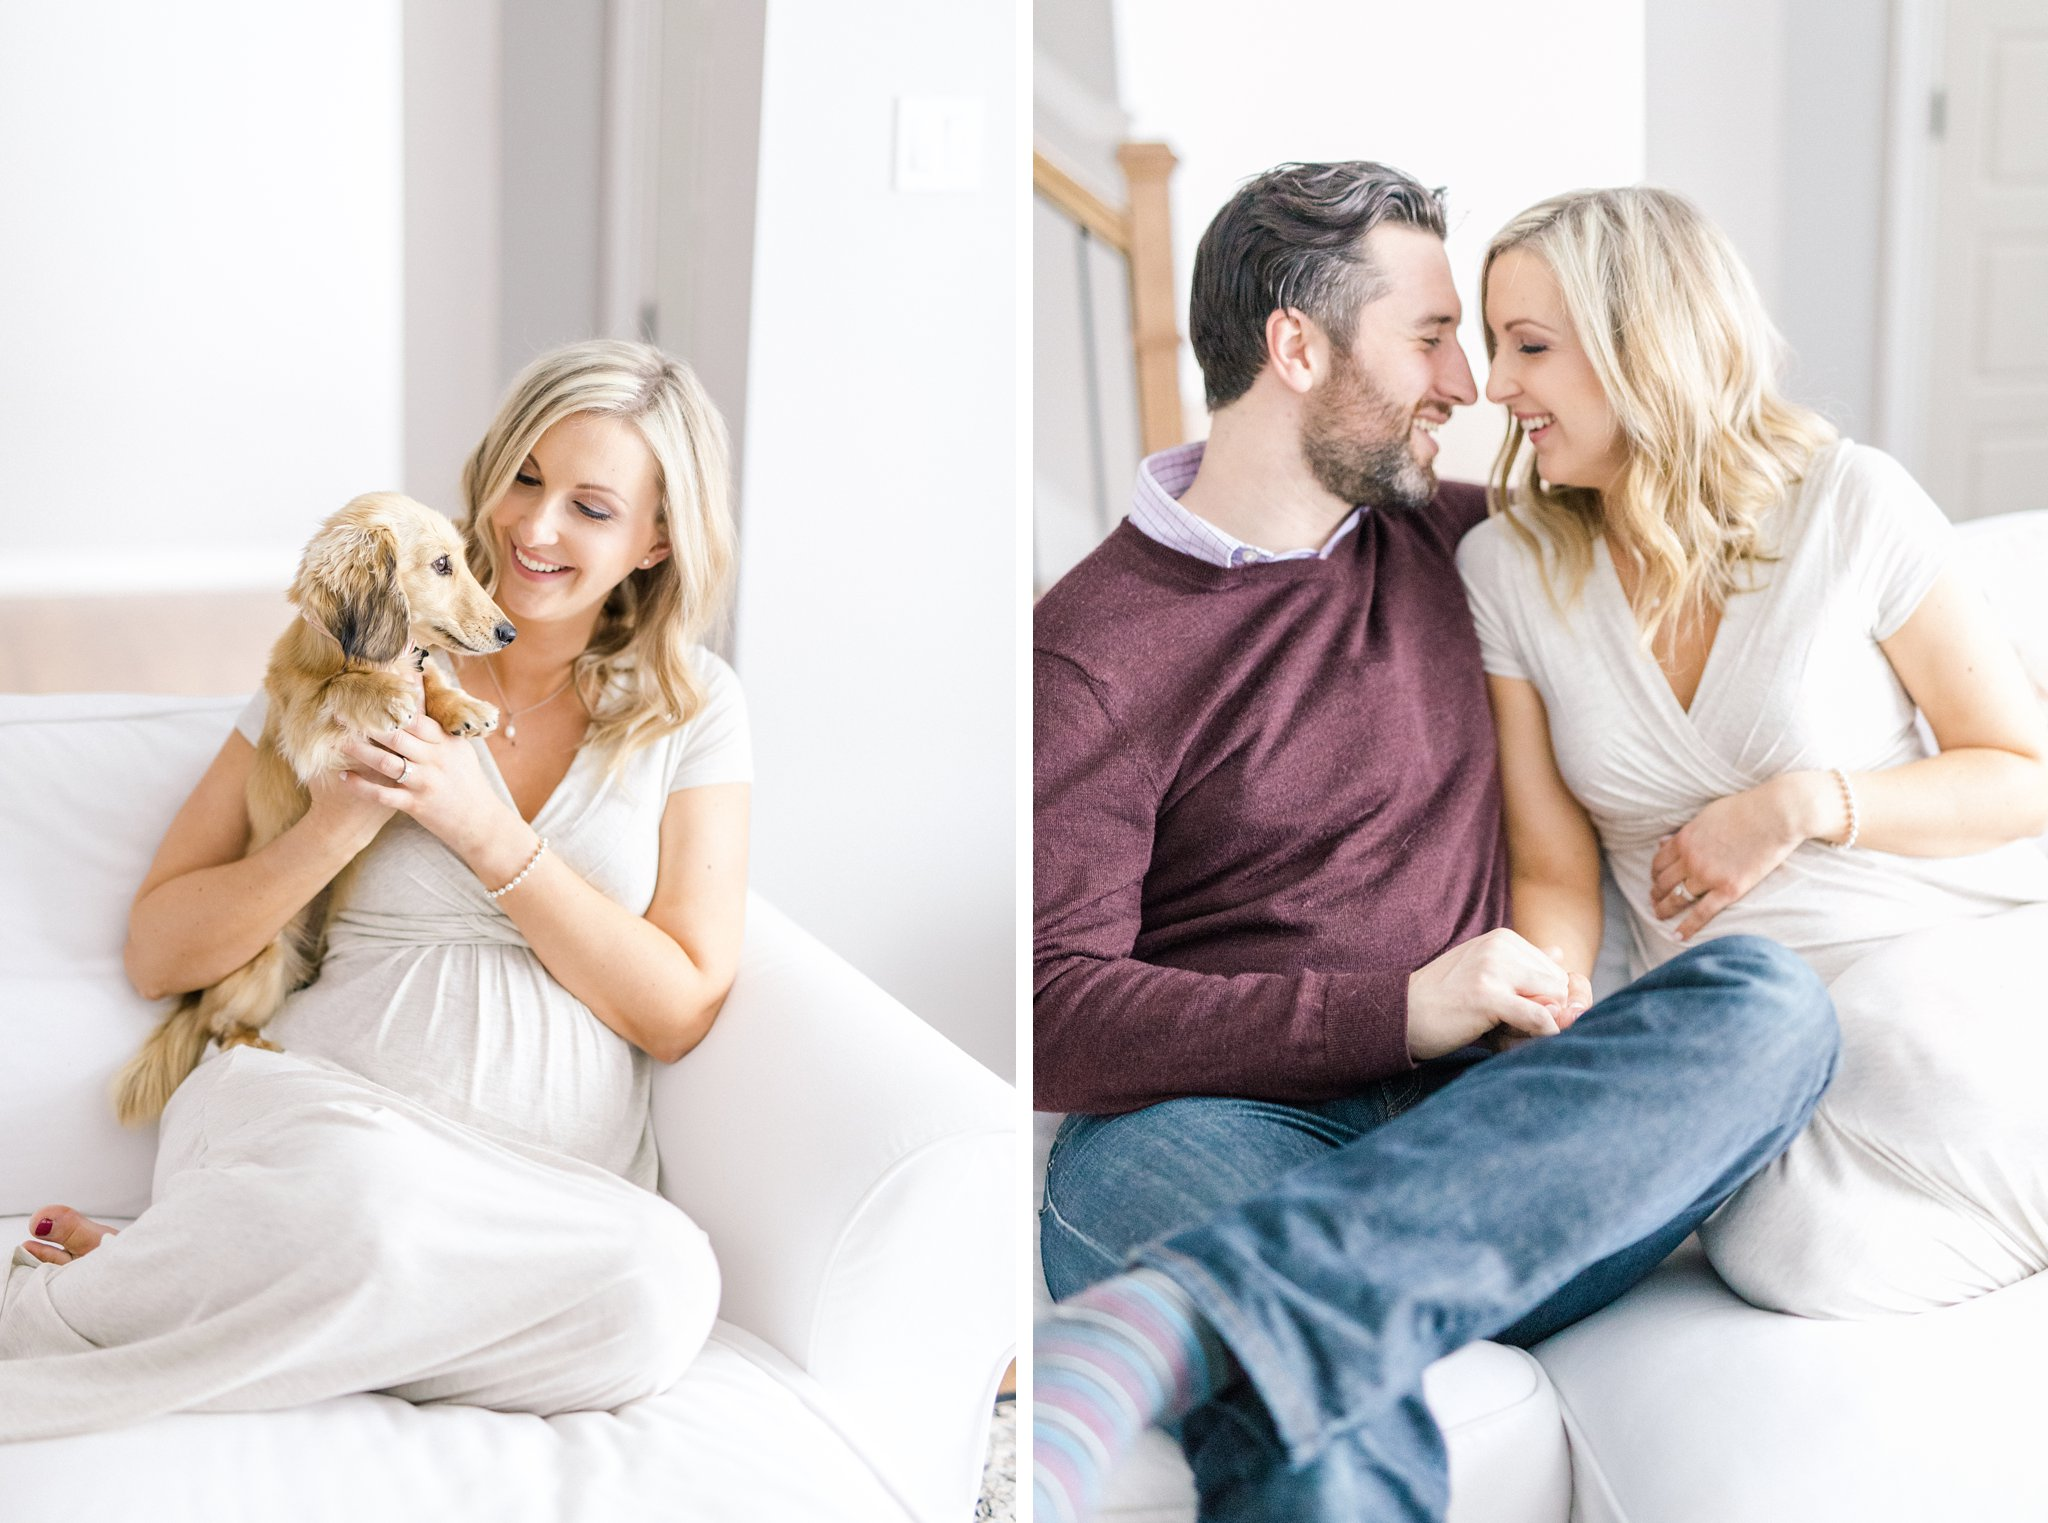 lifestyle maternity photos Ottawa with a wiener dog